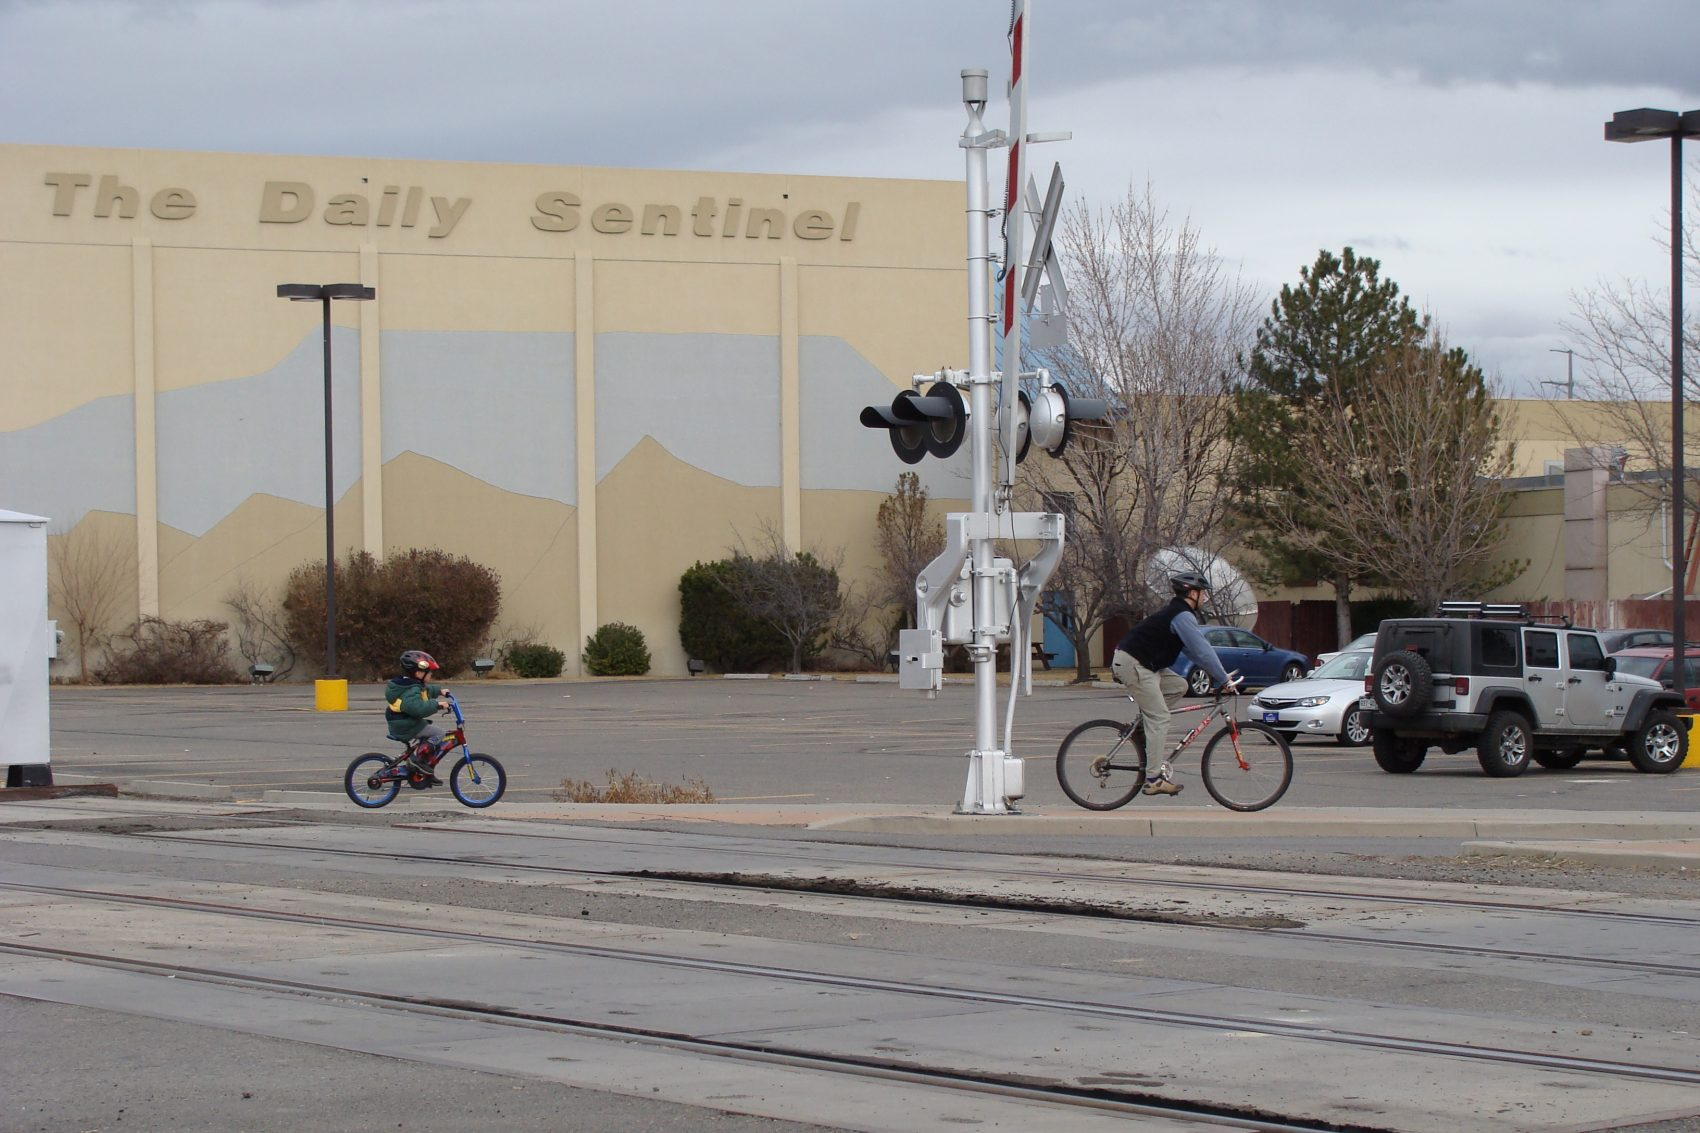 People bike past The Grand Junction Daily Sentinel in Grand Junction, Colo. (jimmy thomas/Flickr)